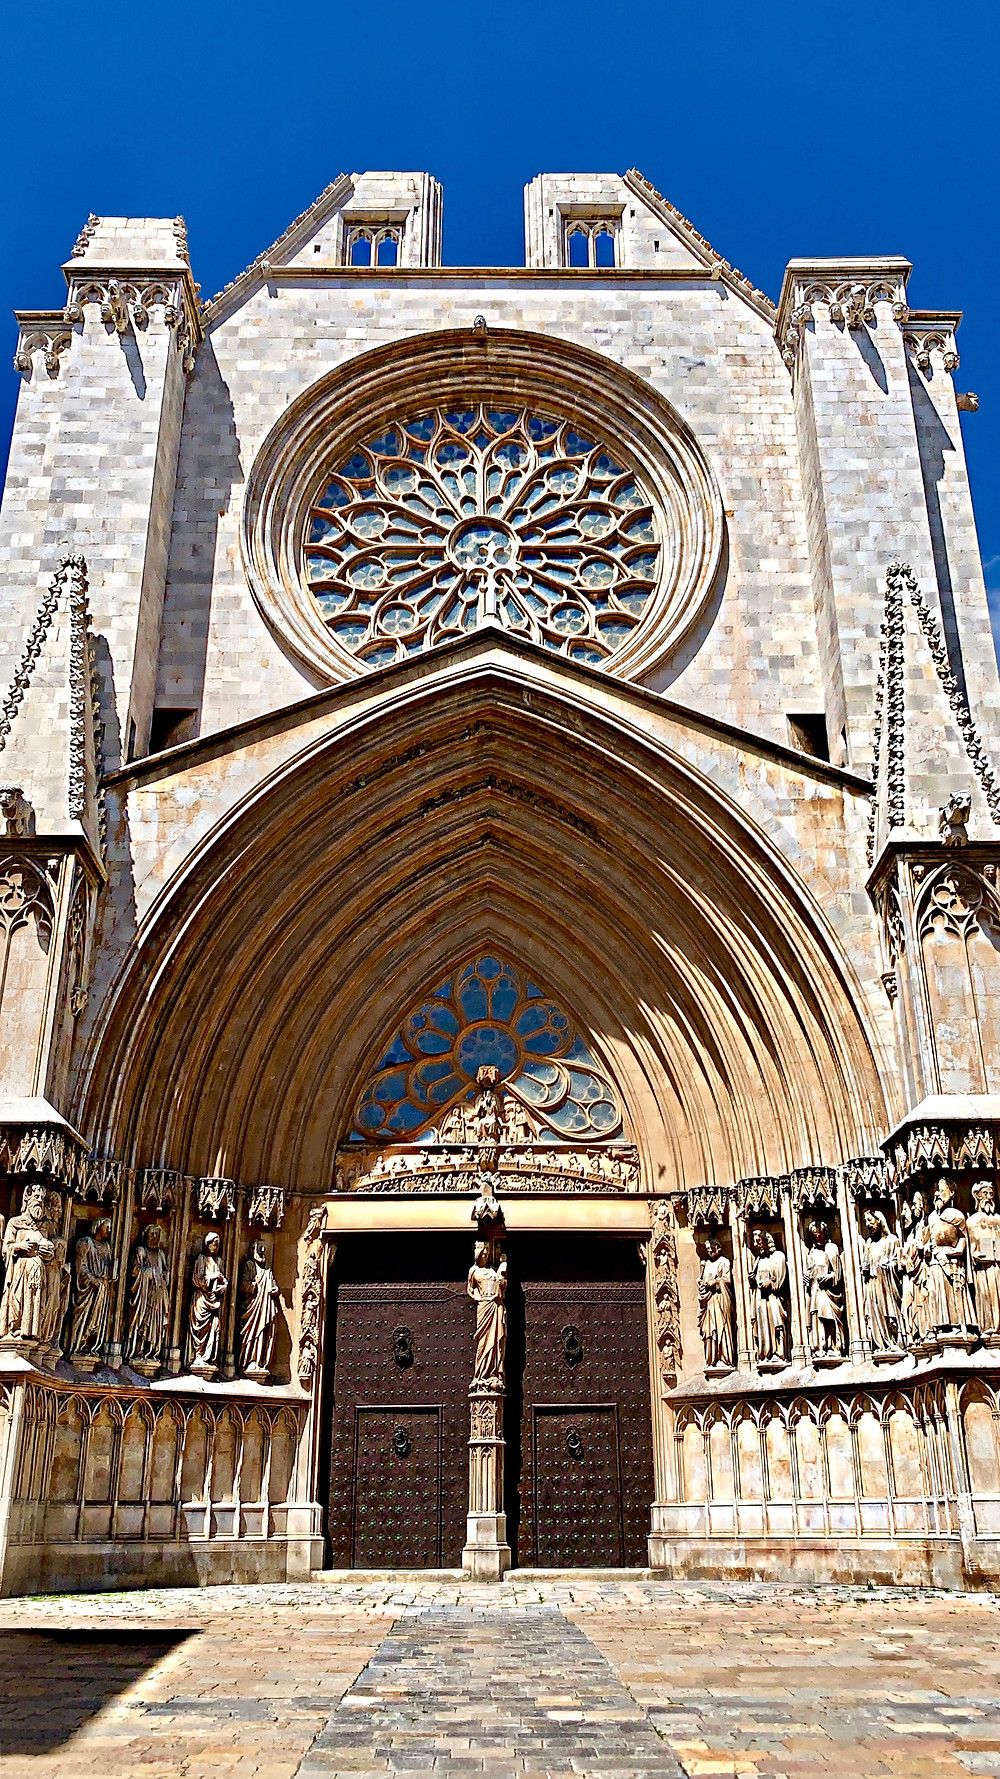 Upwards look at the front facade of the Cathedral of Tarragona in Spain